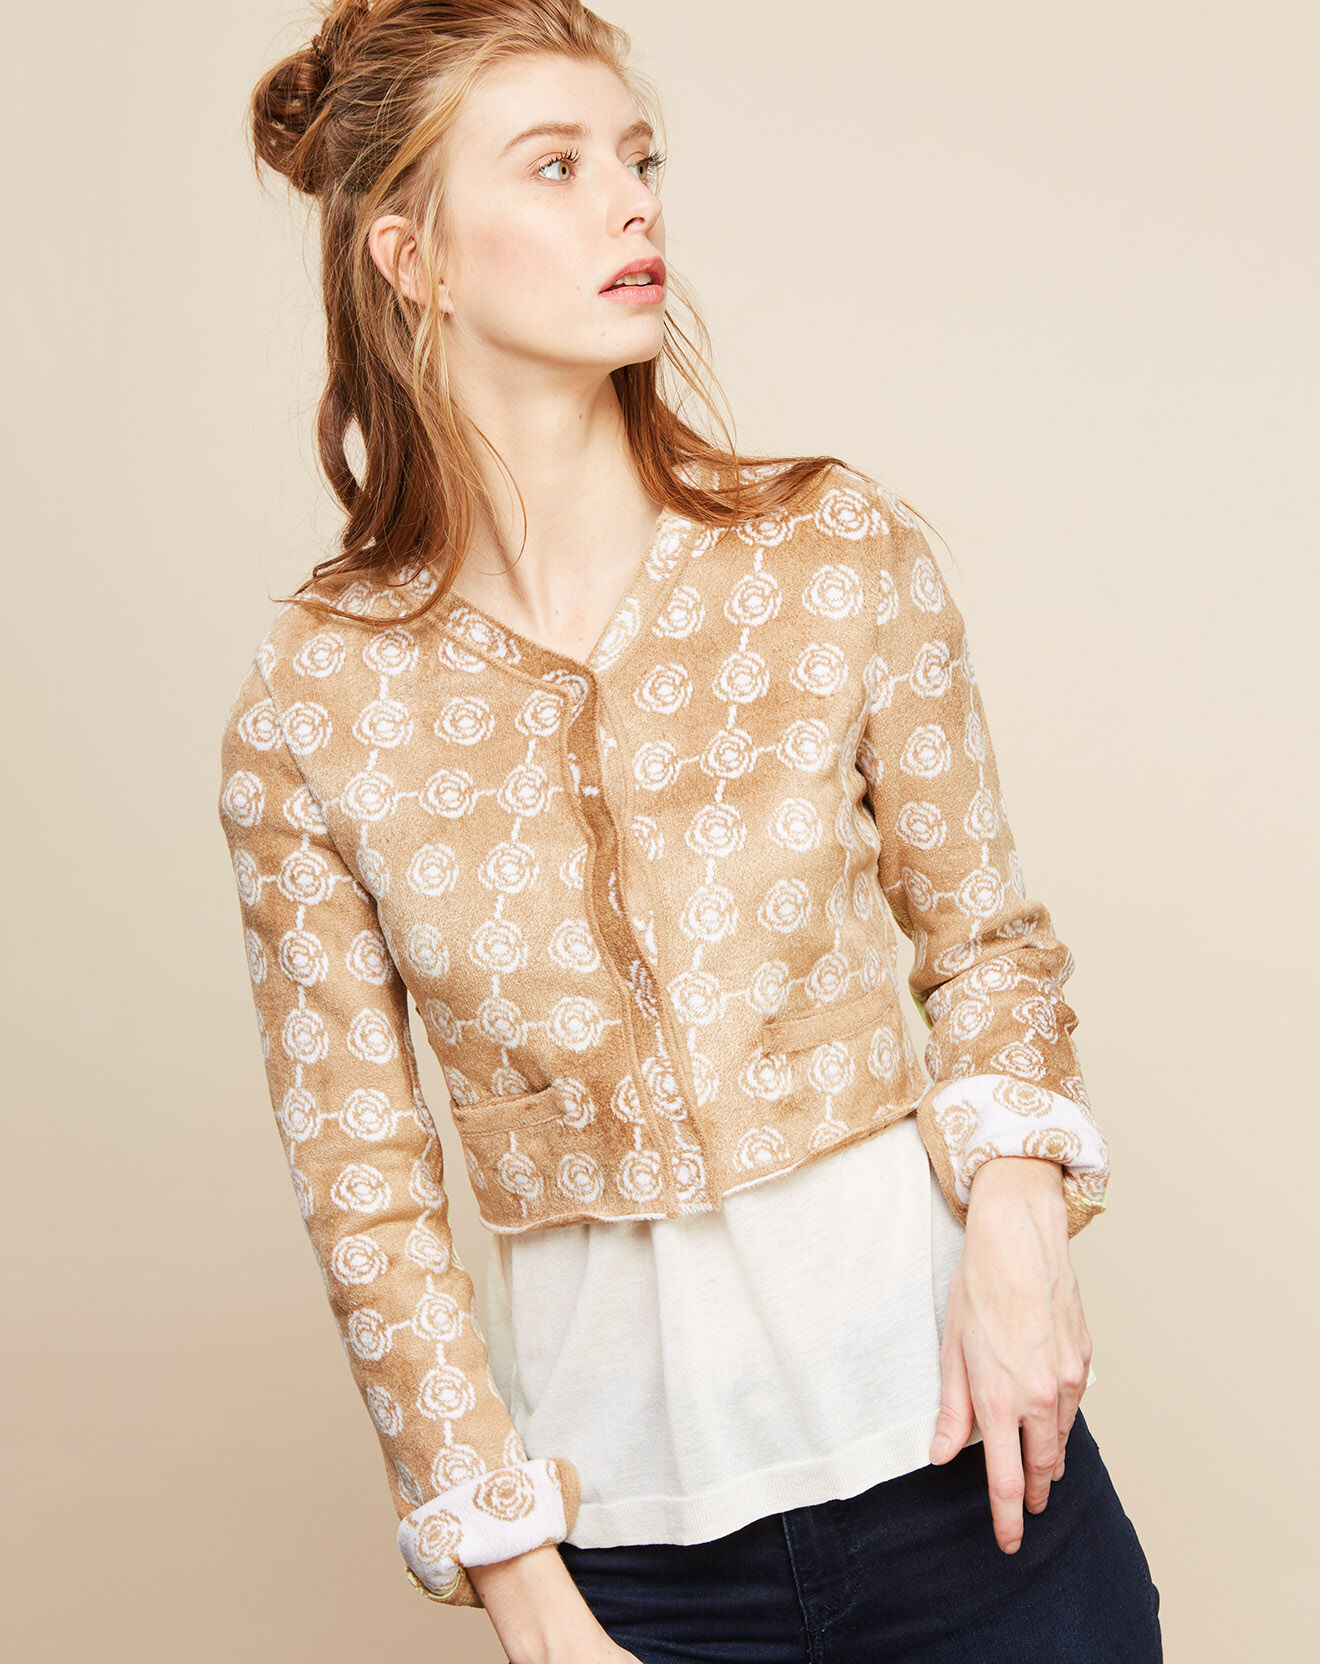 Cardigan Sonia camel/nacre/chartreuse